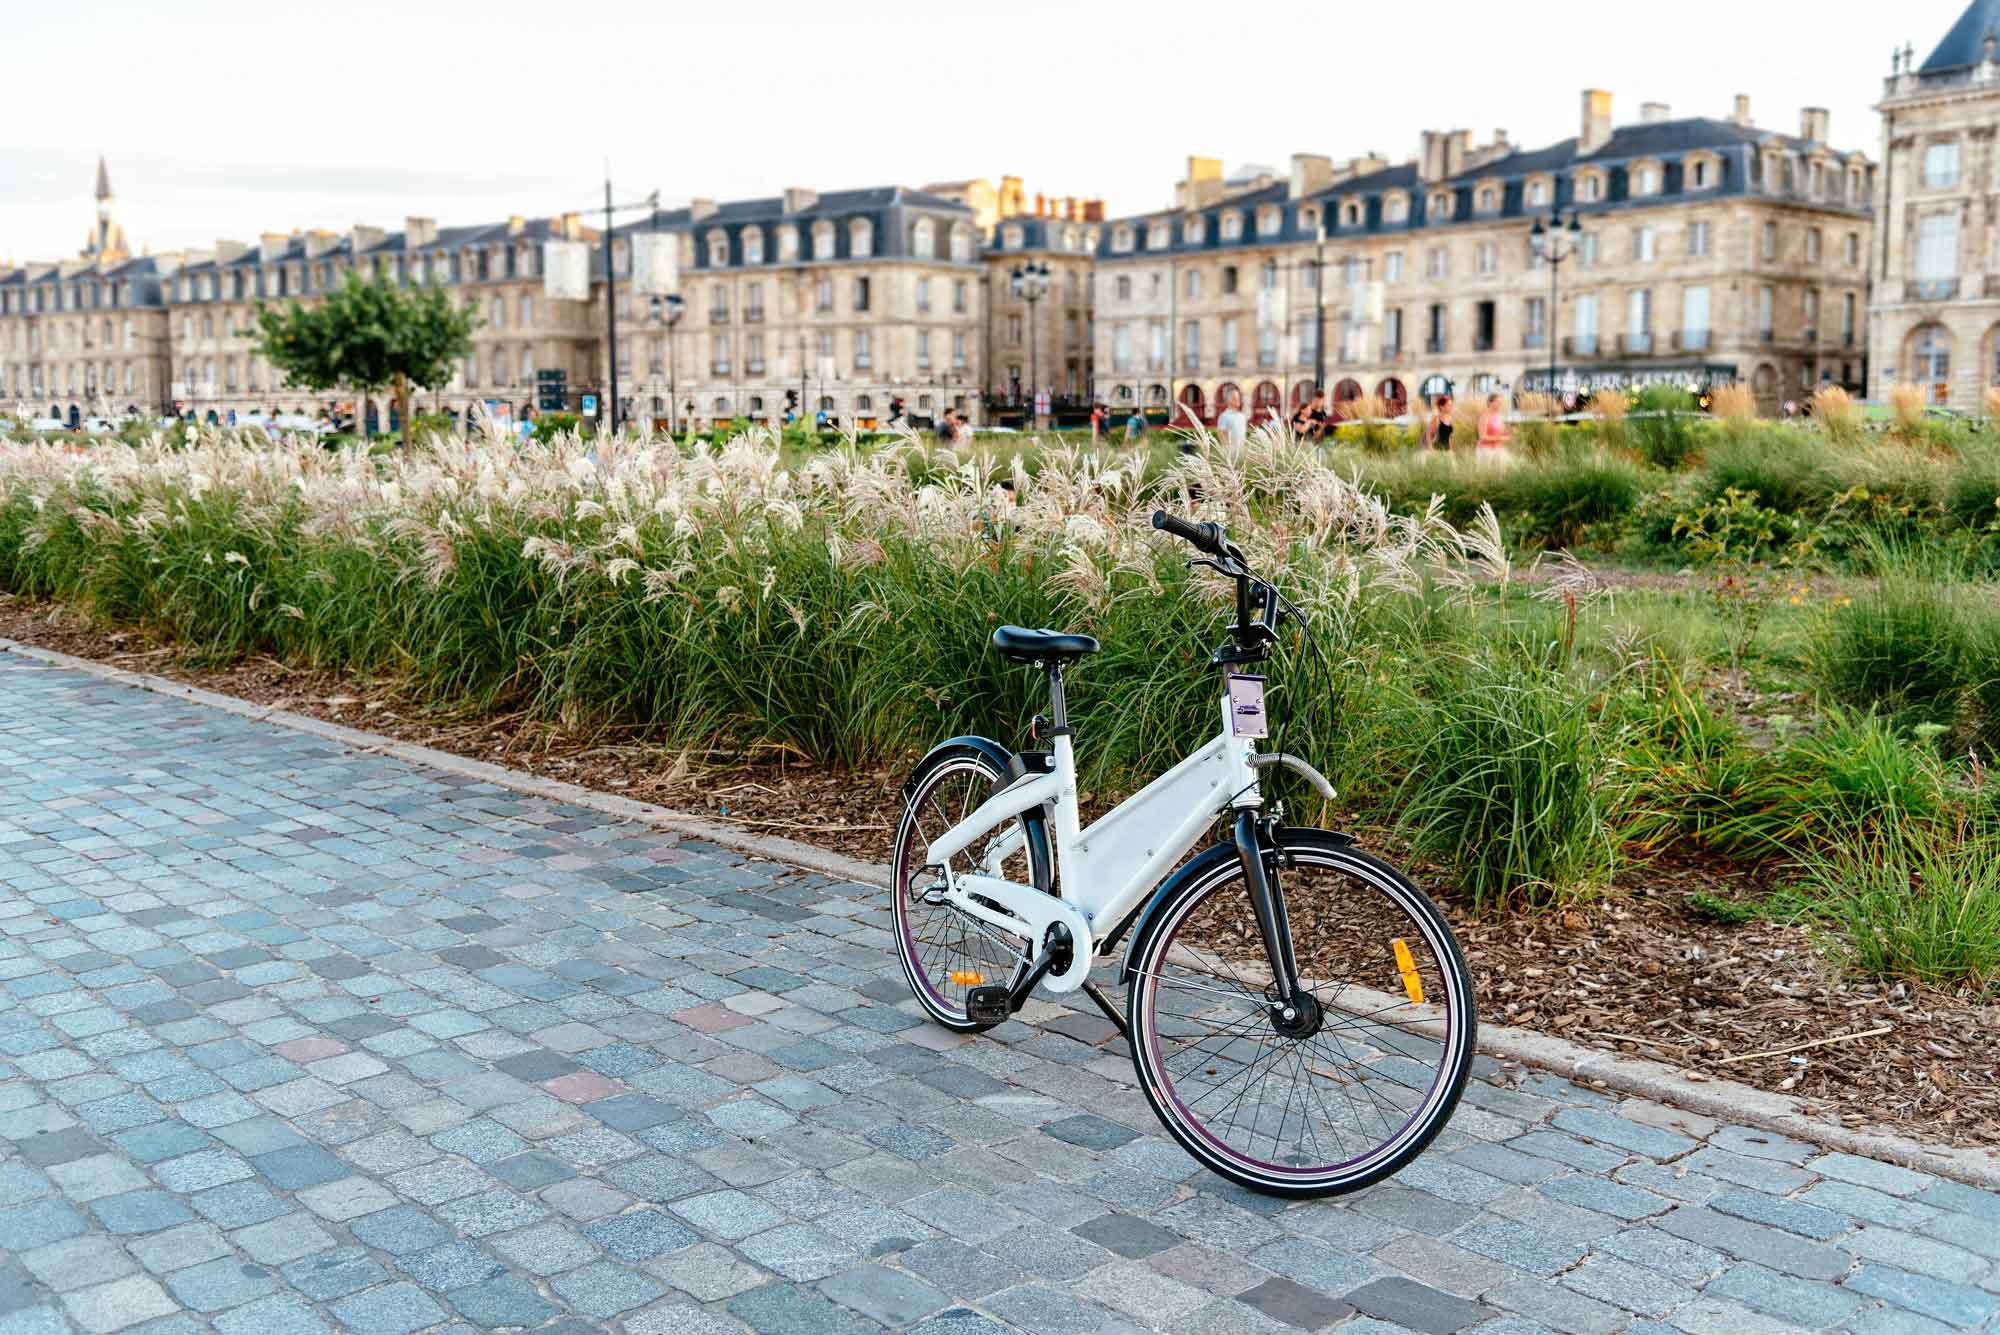 Bordeaux and bicycling go hand in hand, whether one wishes to cycle through the medieval streets of the UNESCO World Heritage city, along paths adjacent to the Garonne River, or Bordeaux's canals.